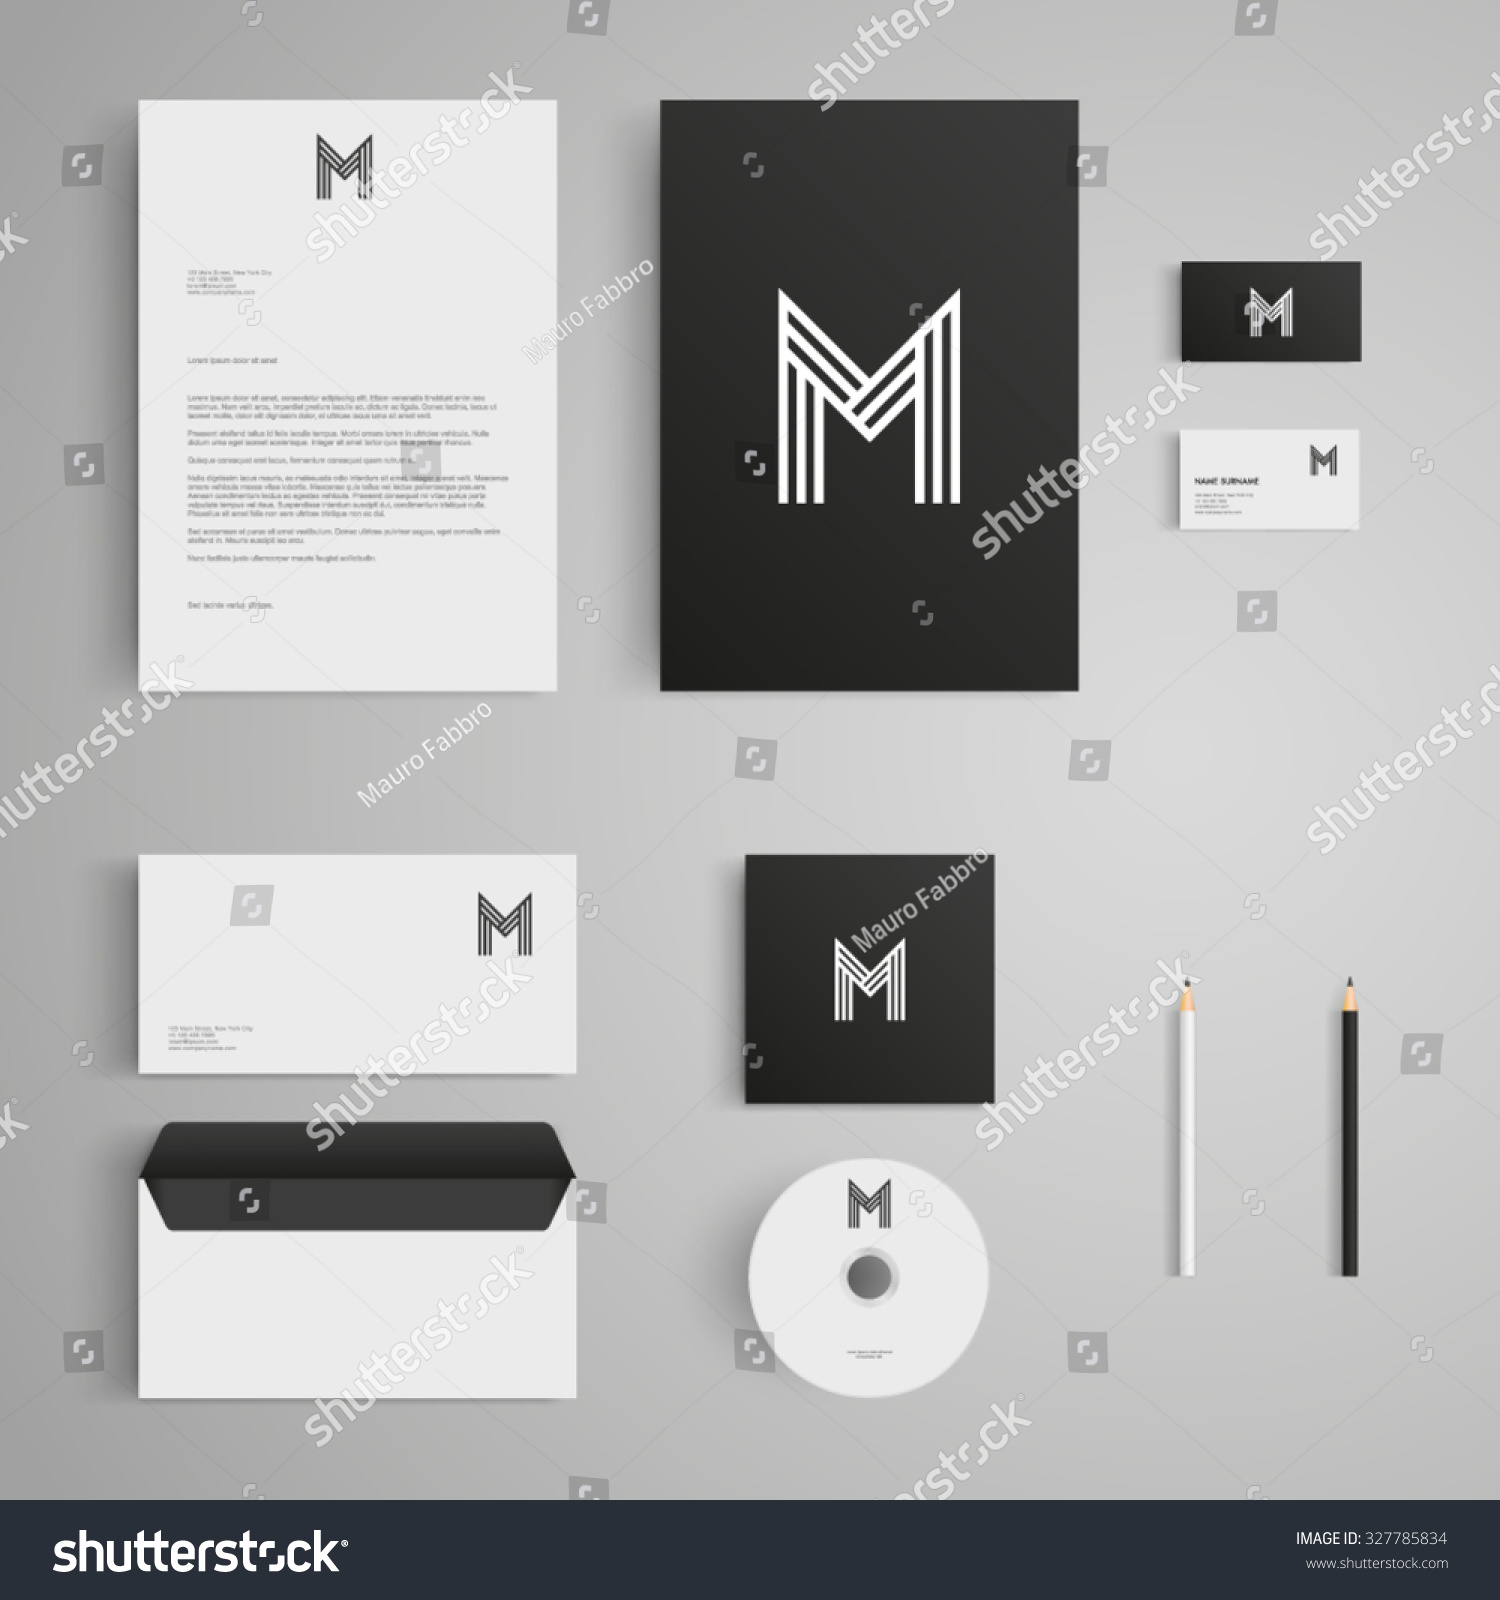 Blank Stationery And Corporate Identity Template Consist: Stationery Template With Letter M Logo. Corporate